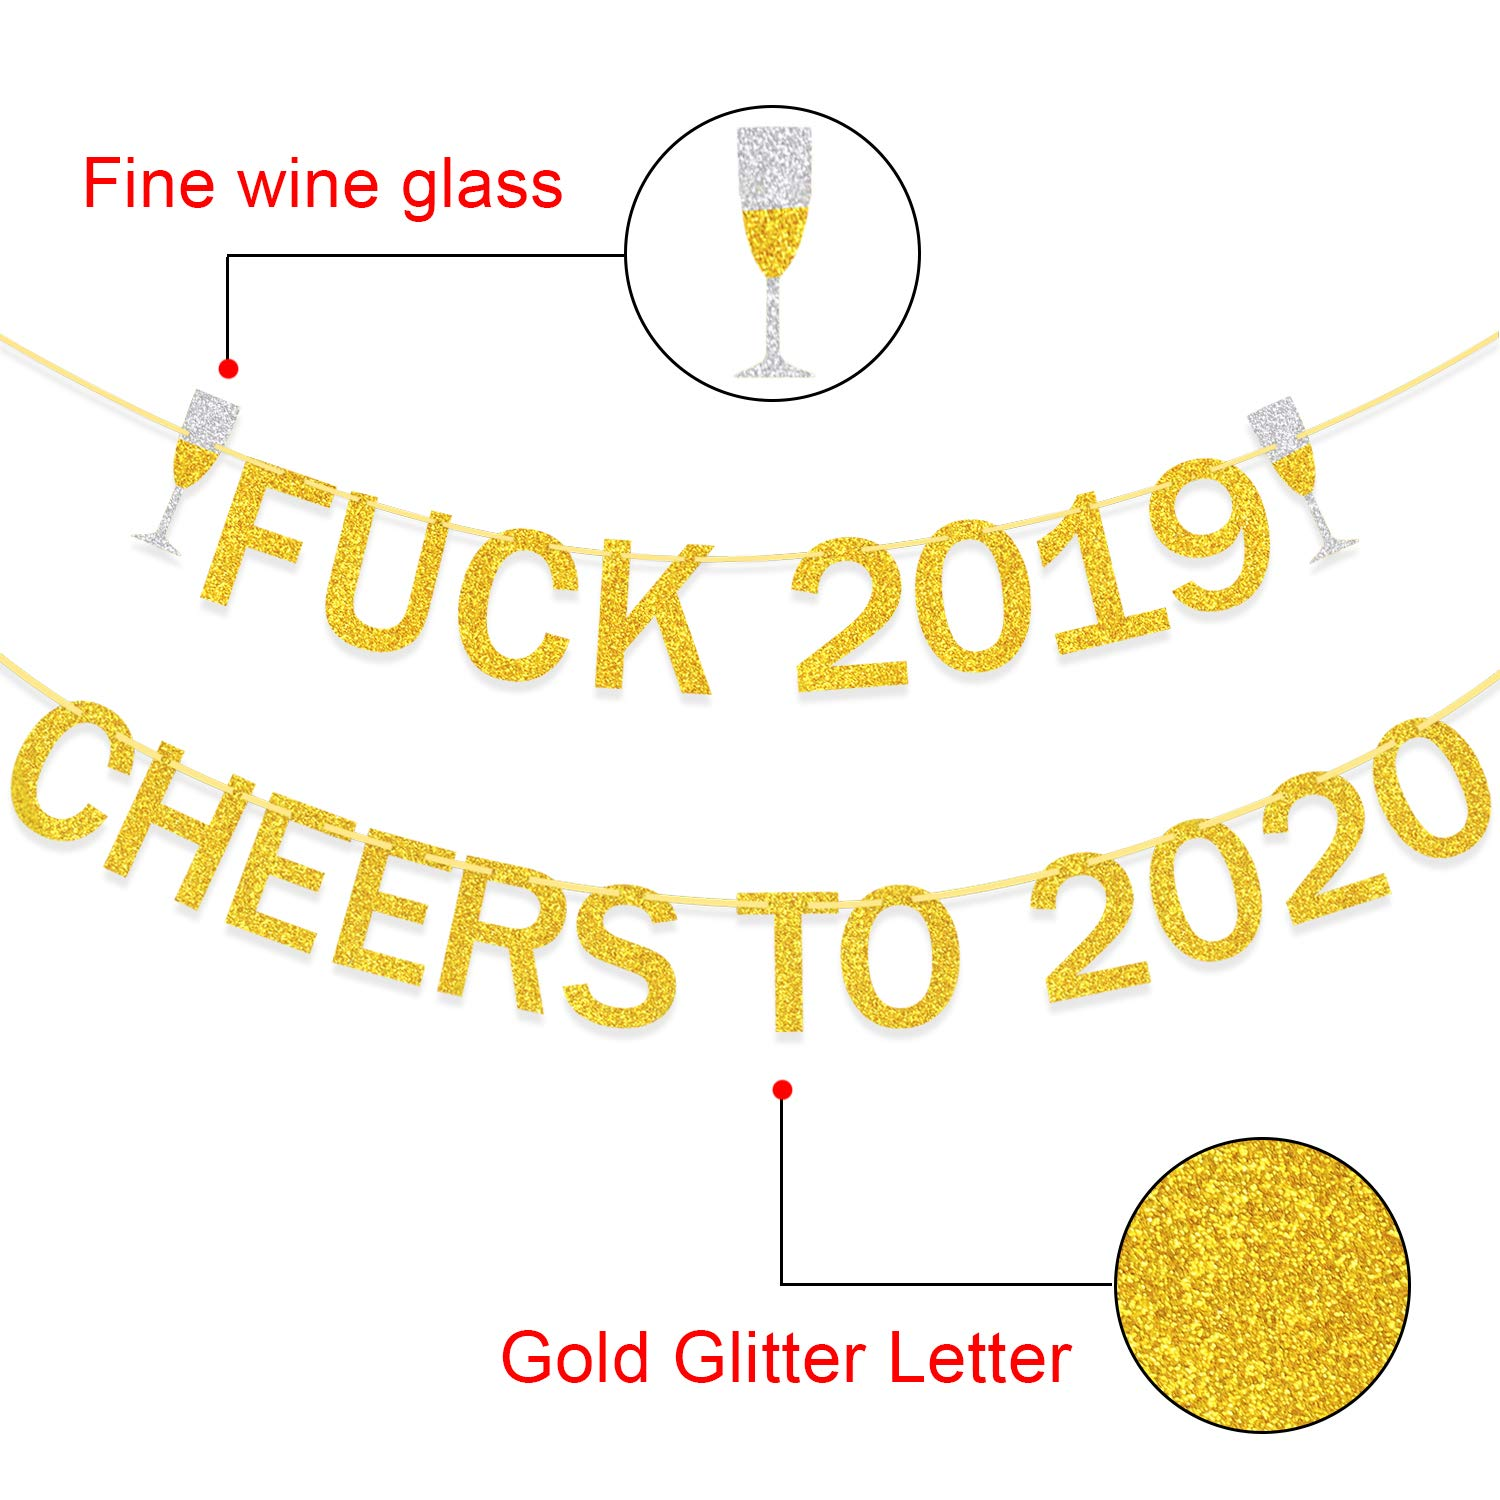 2020 New Years Eve Party Decorations New Year Banner 2019 Farewell Banner Farewell 2019 Cheers to 2020 banner Gold Glitter New Year Decorations New Year Party supplies